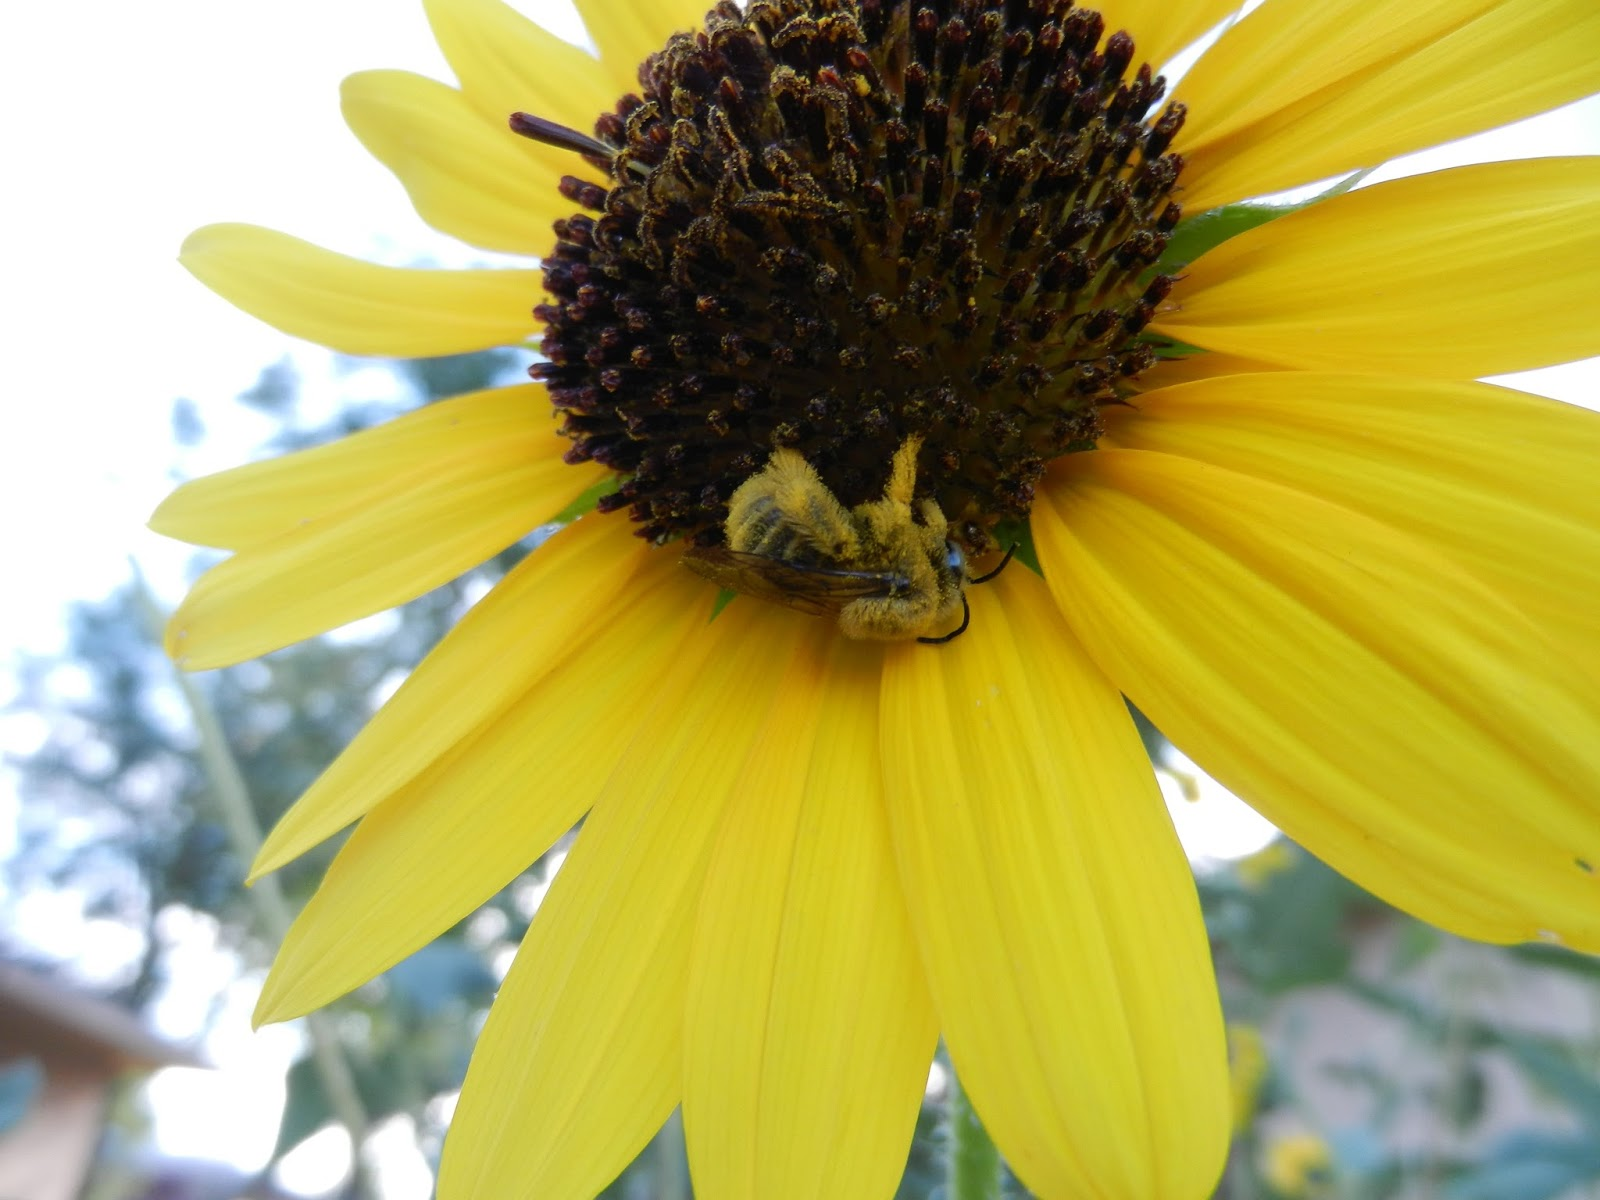 bumble bee sunflower pic